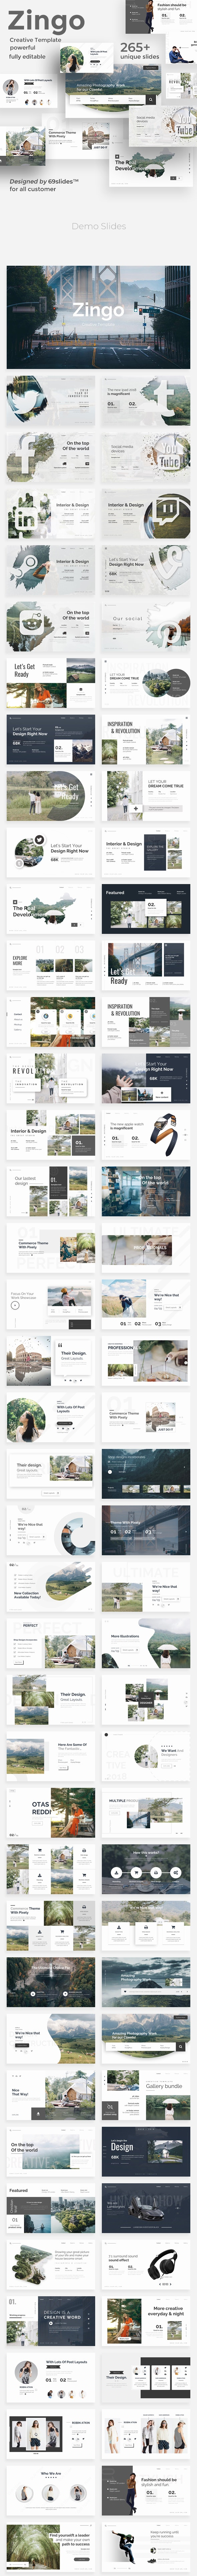 Zingo Creative Powerpoint Template - Creative PowerPoint Templates